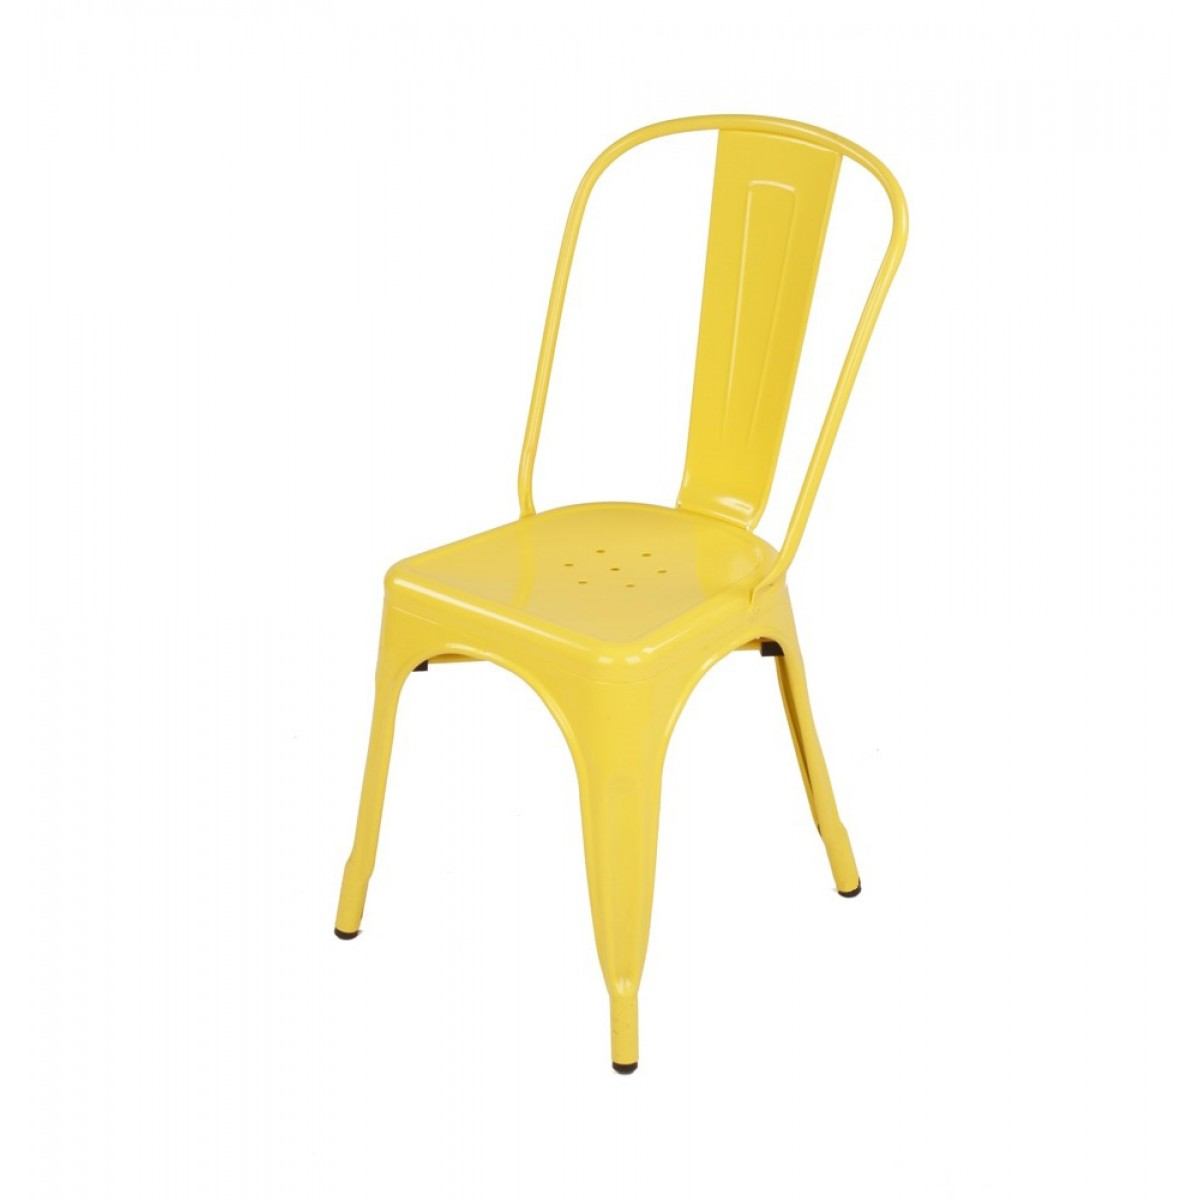 Yellow Metal Chairs Tolix Style Metal Industrial Loft Designer Yellow Cafe Chair